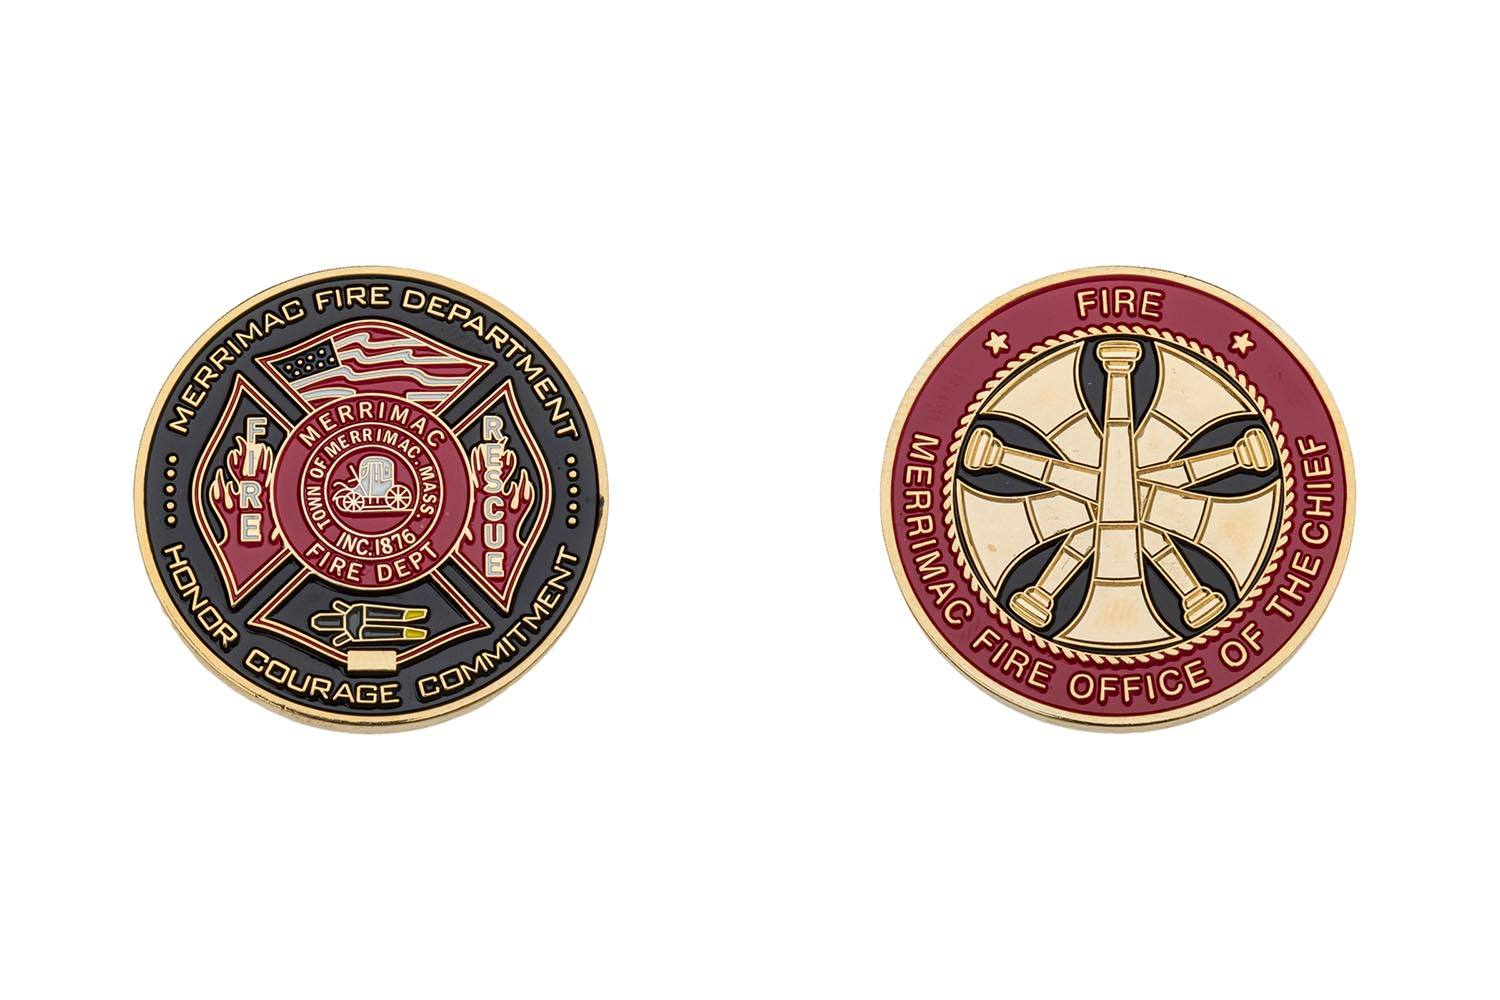 Metal fire department coins